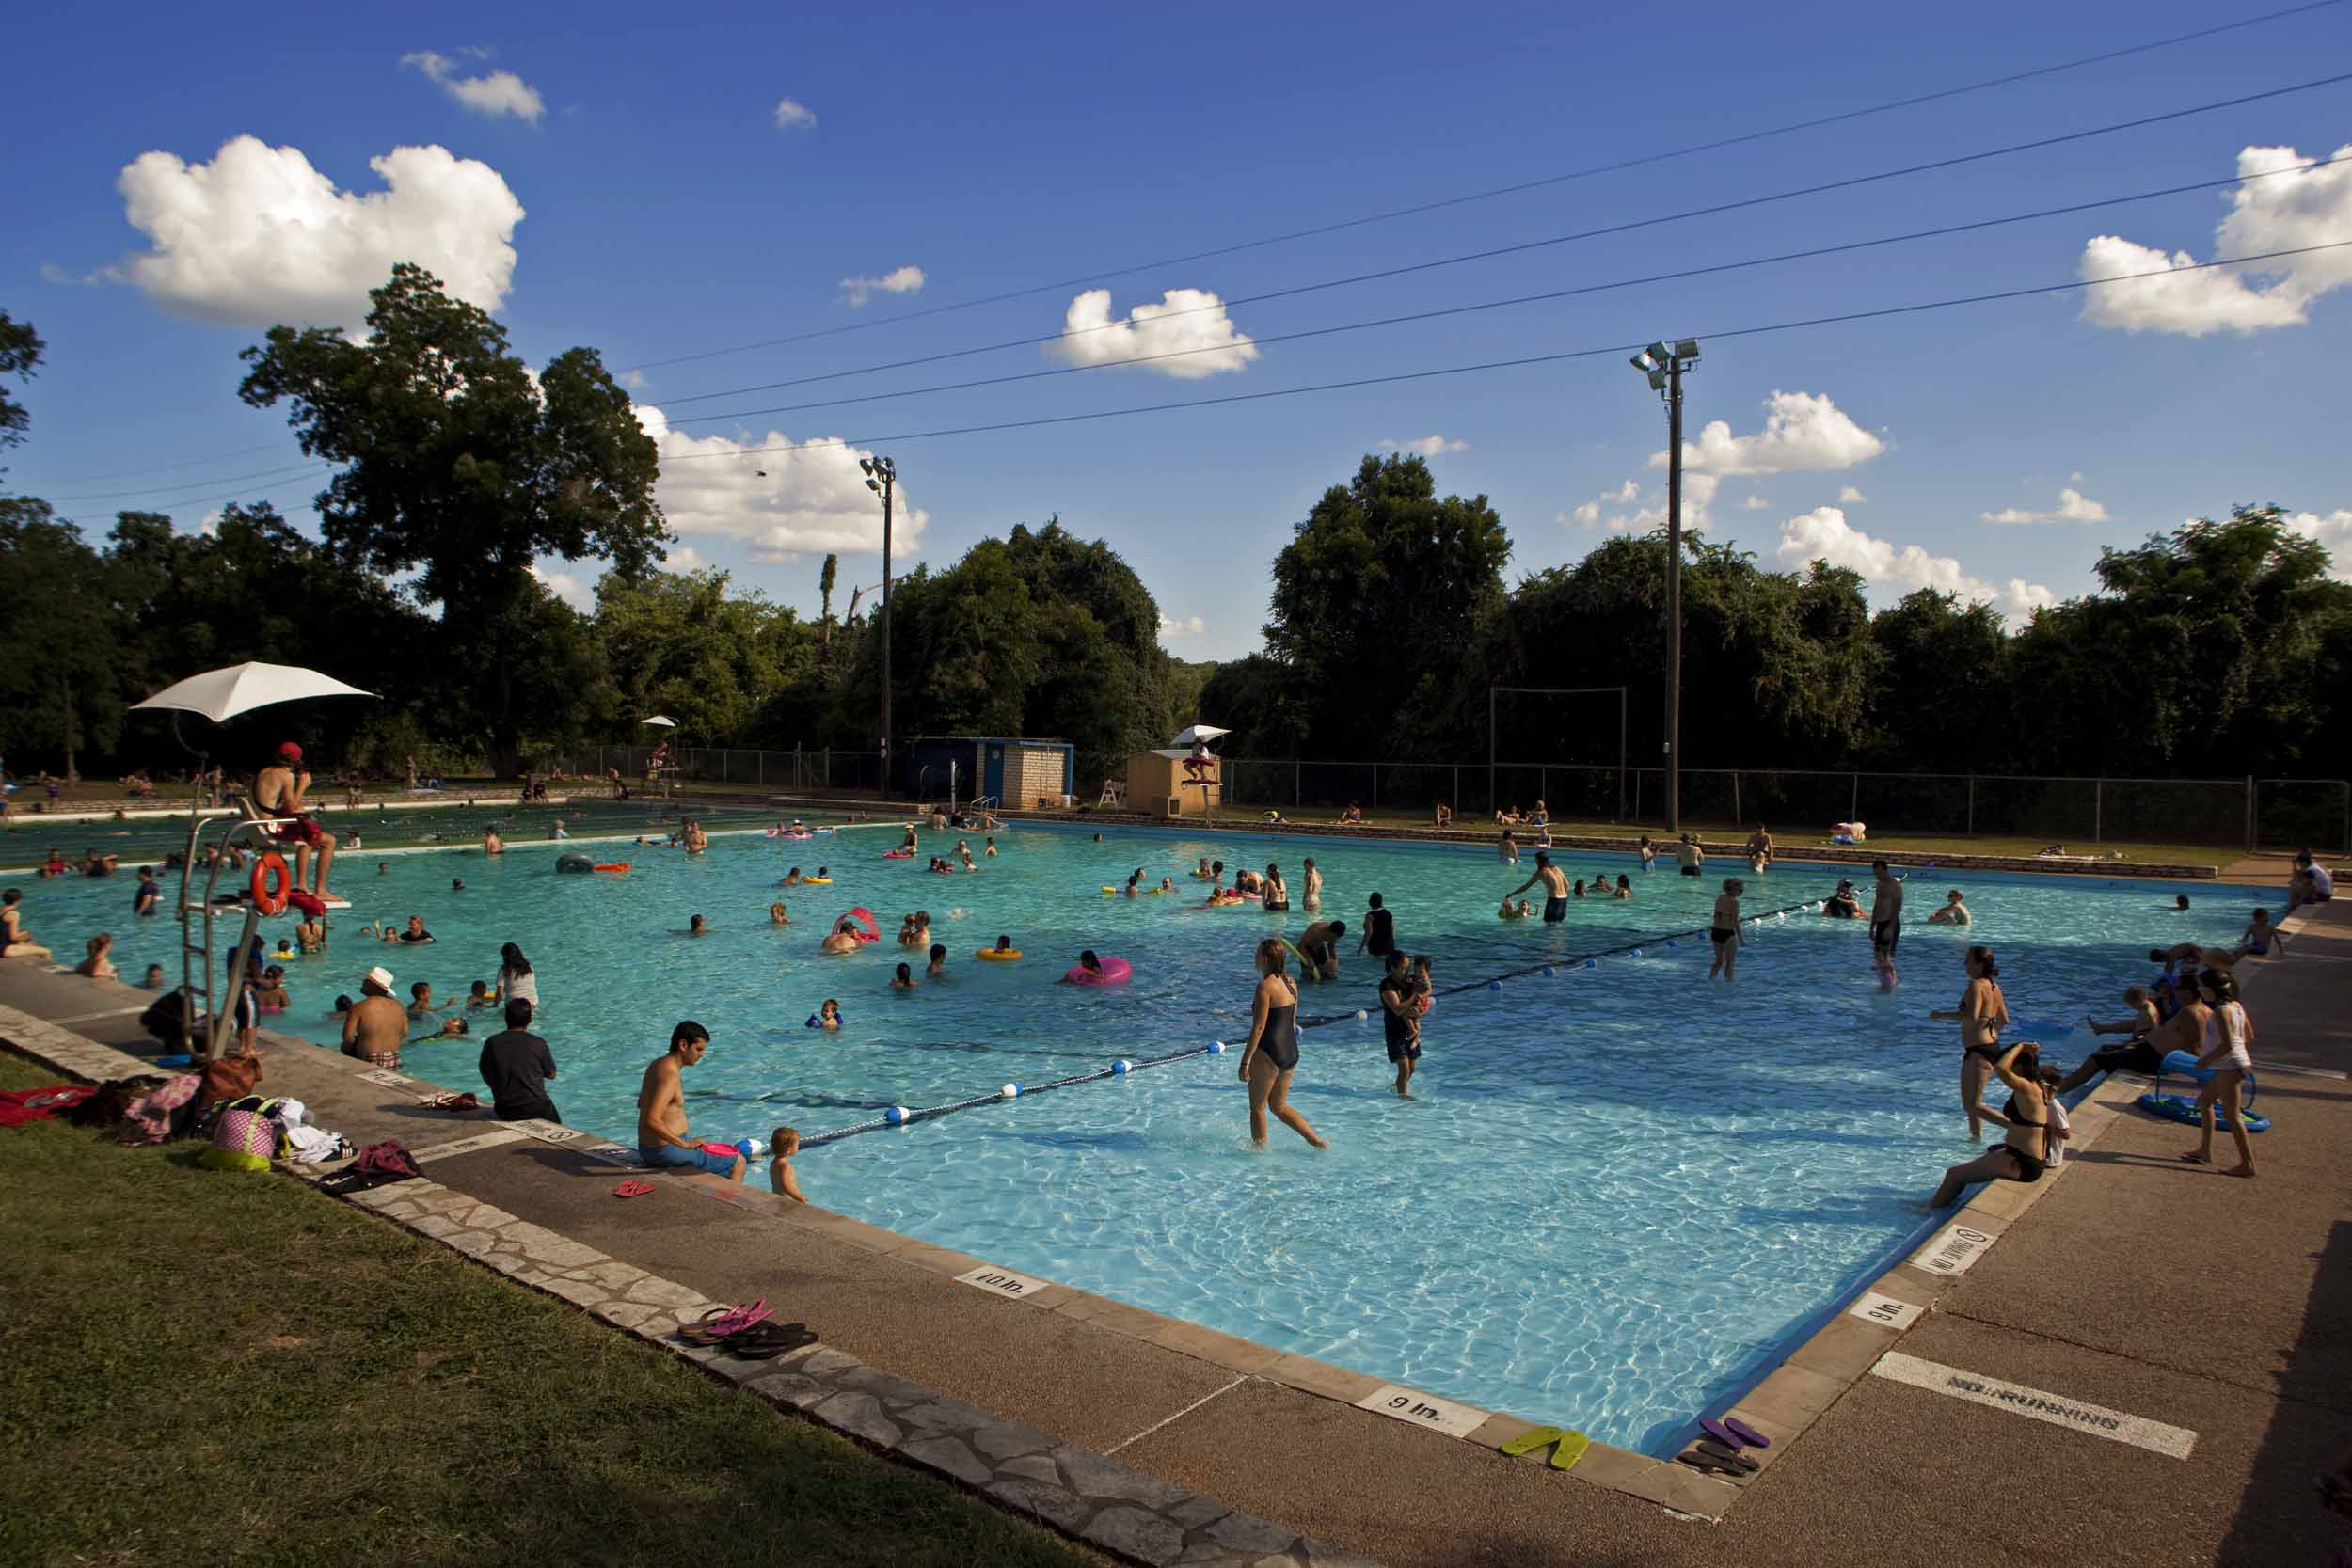 Gross Water Test Shows Just How Much Pee Is In Public Swimming Pools